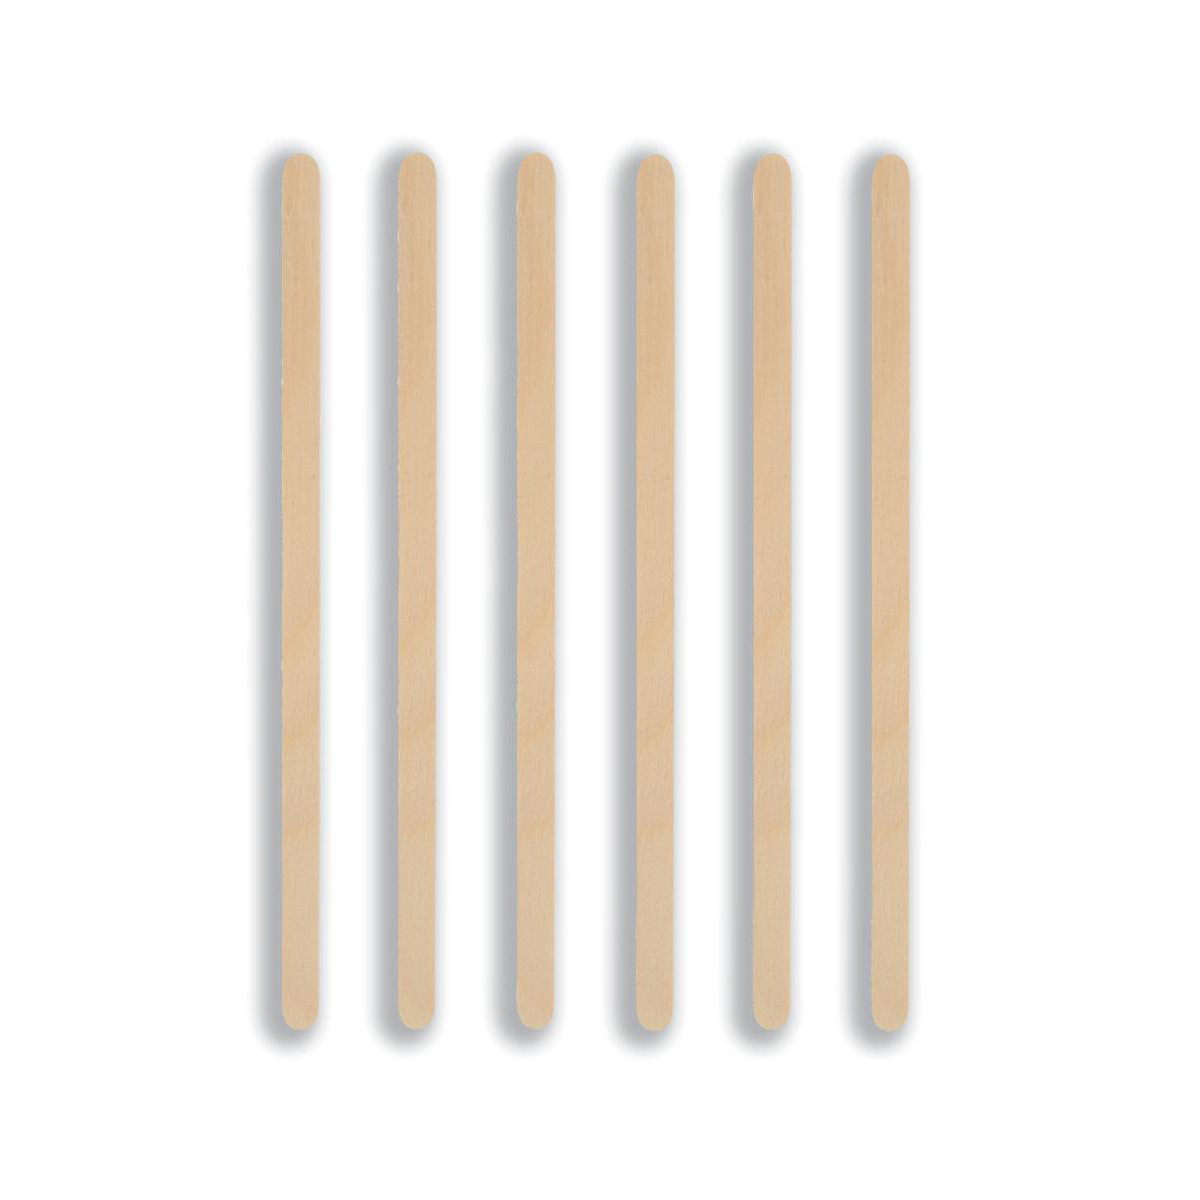 Cuttlery Drink Stirrers Wooden 190mm Pack 1000